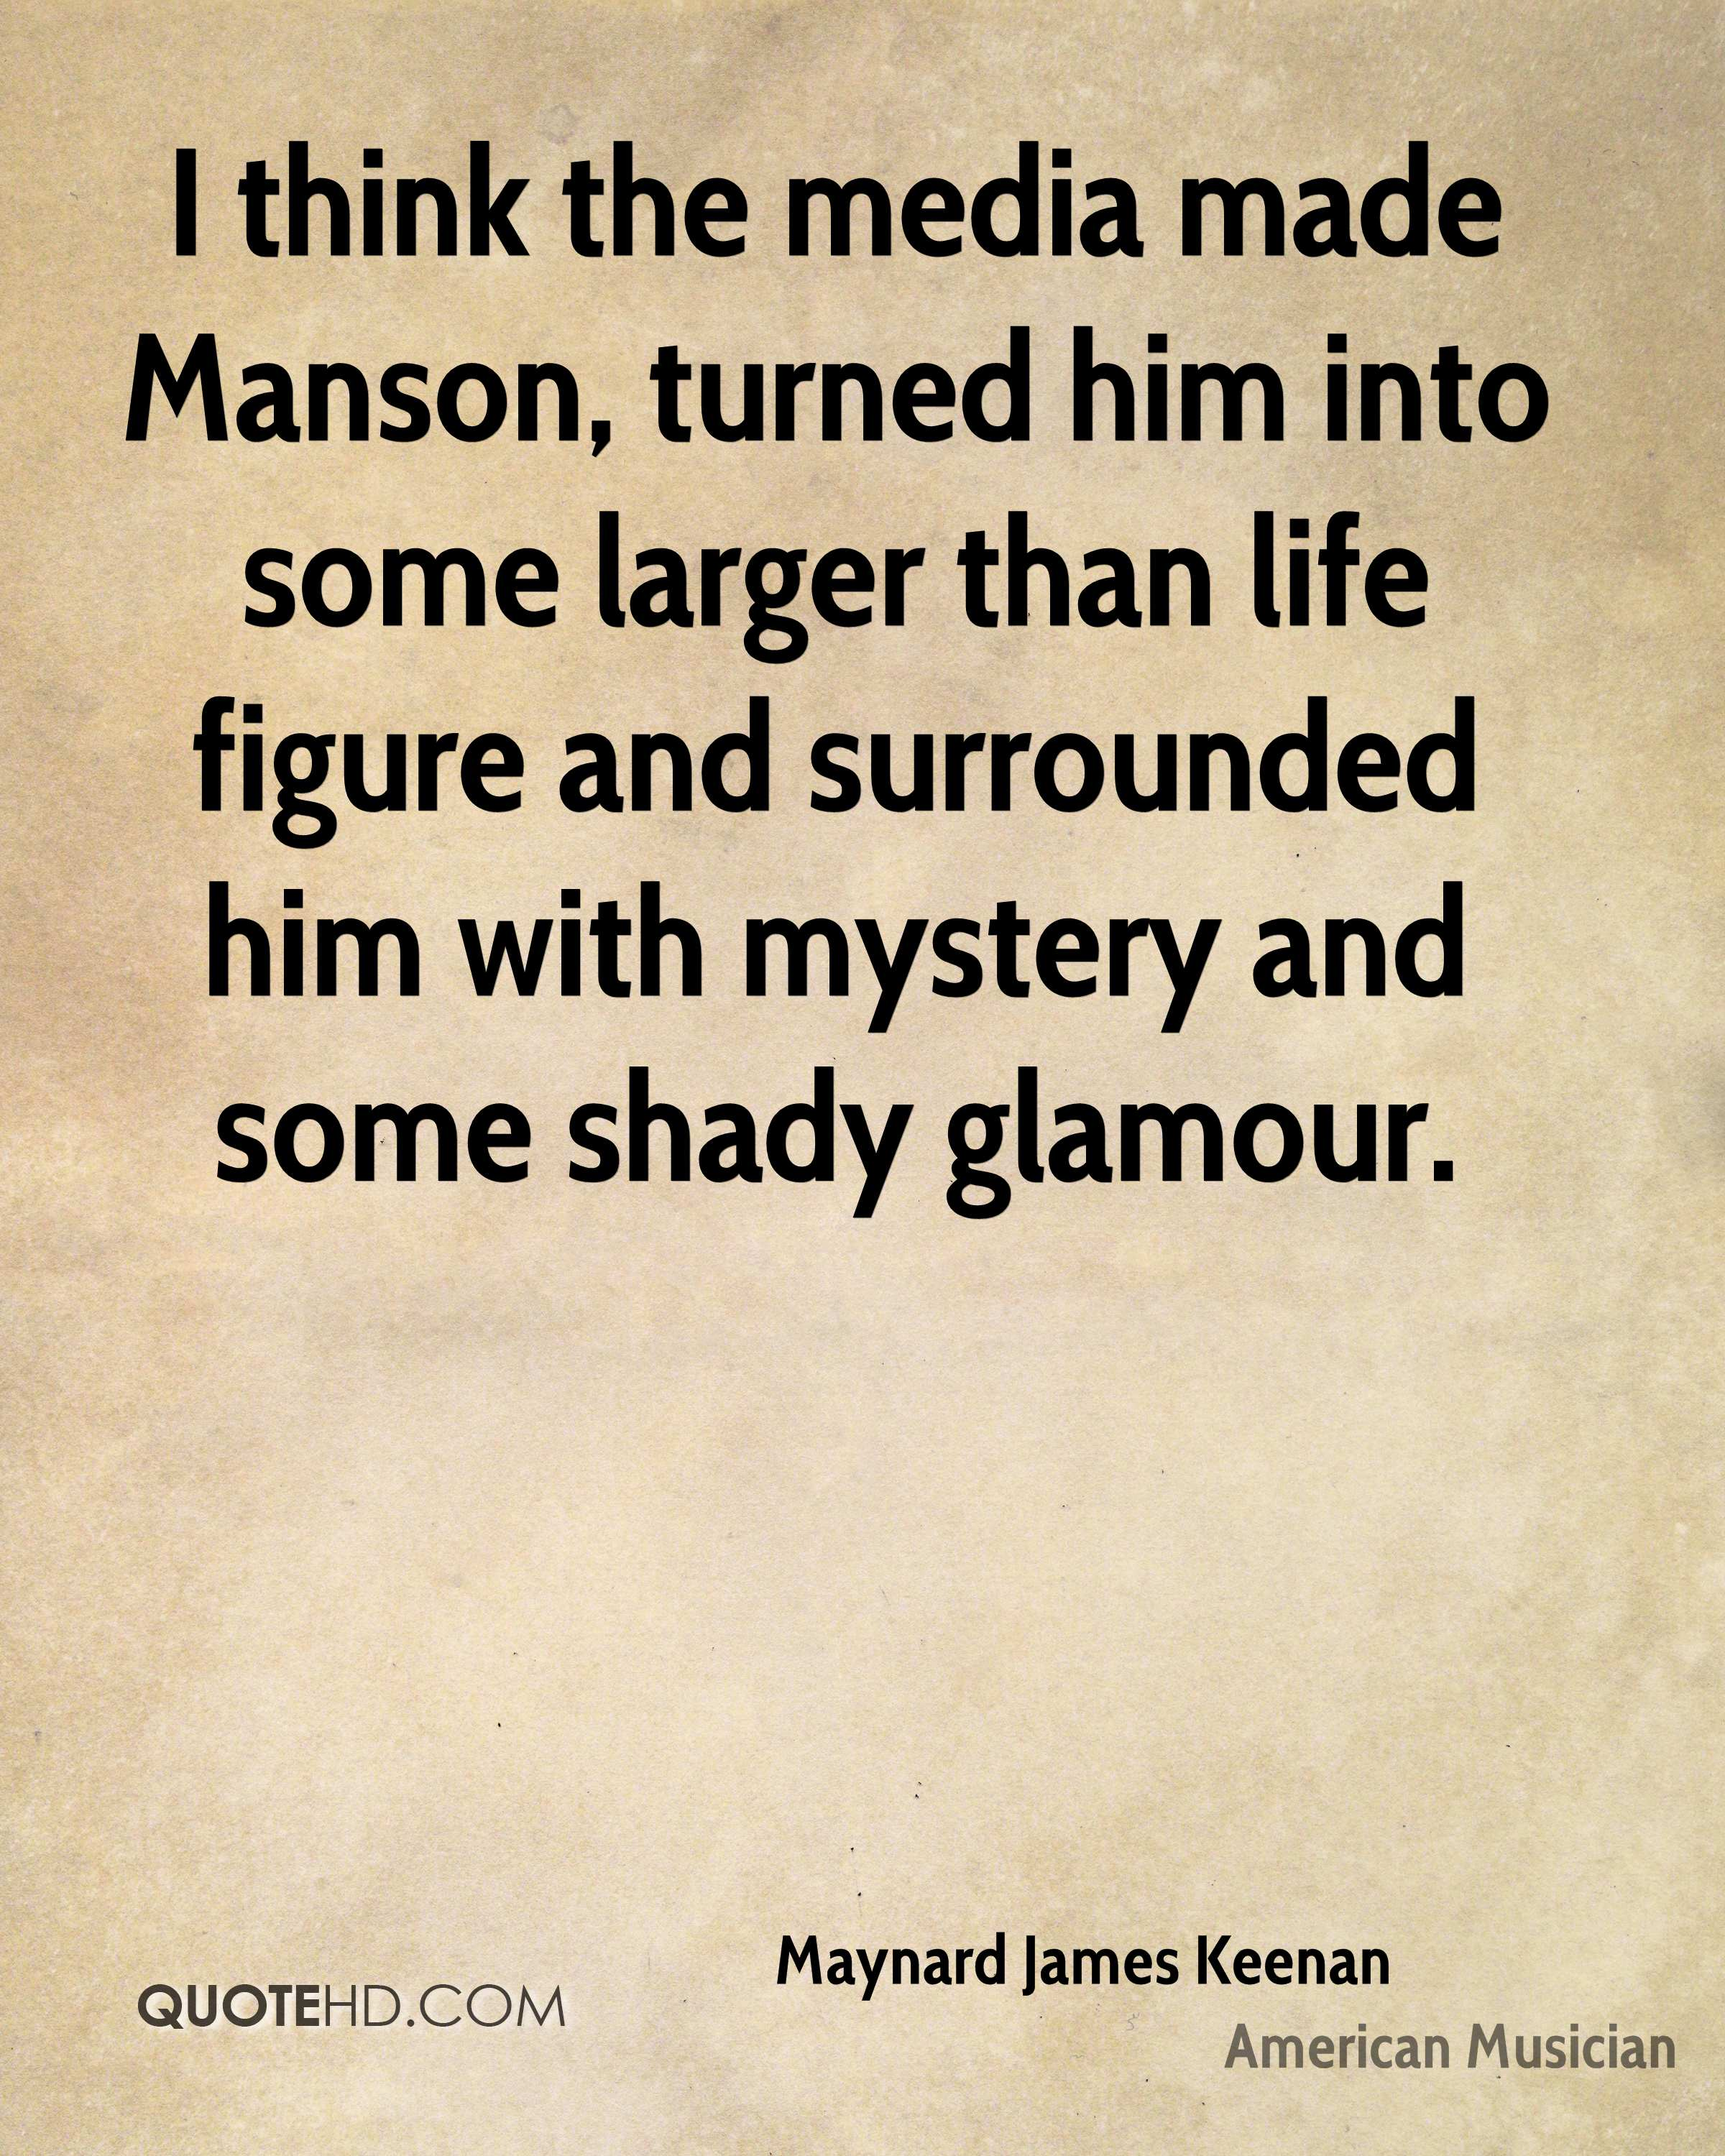 I think the media made Manson, turned him into some larger than life figure and surrounded him with mystery and some shady glamour.